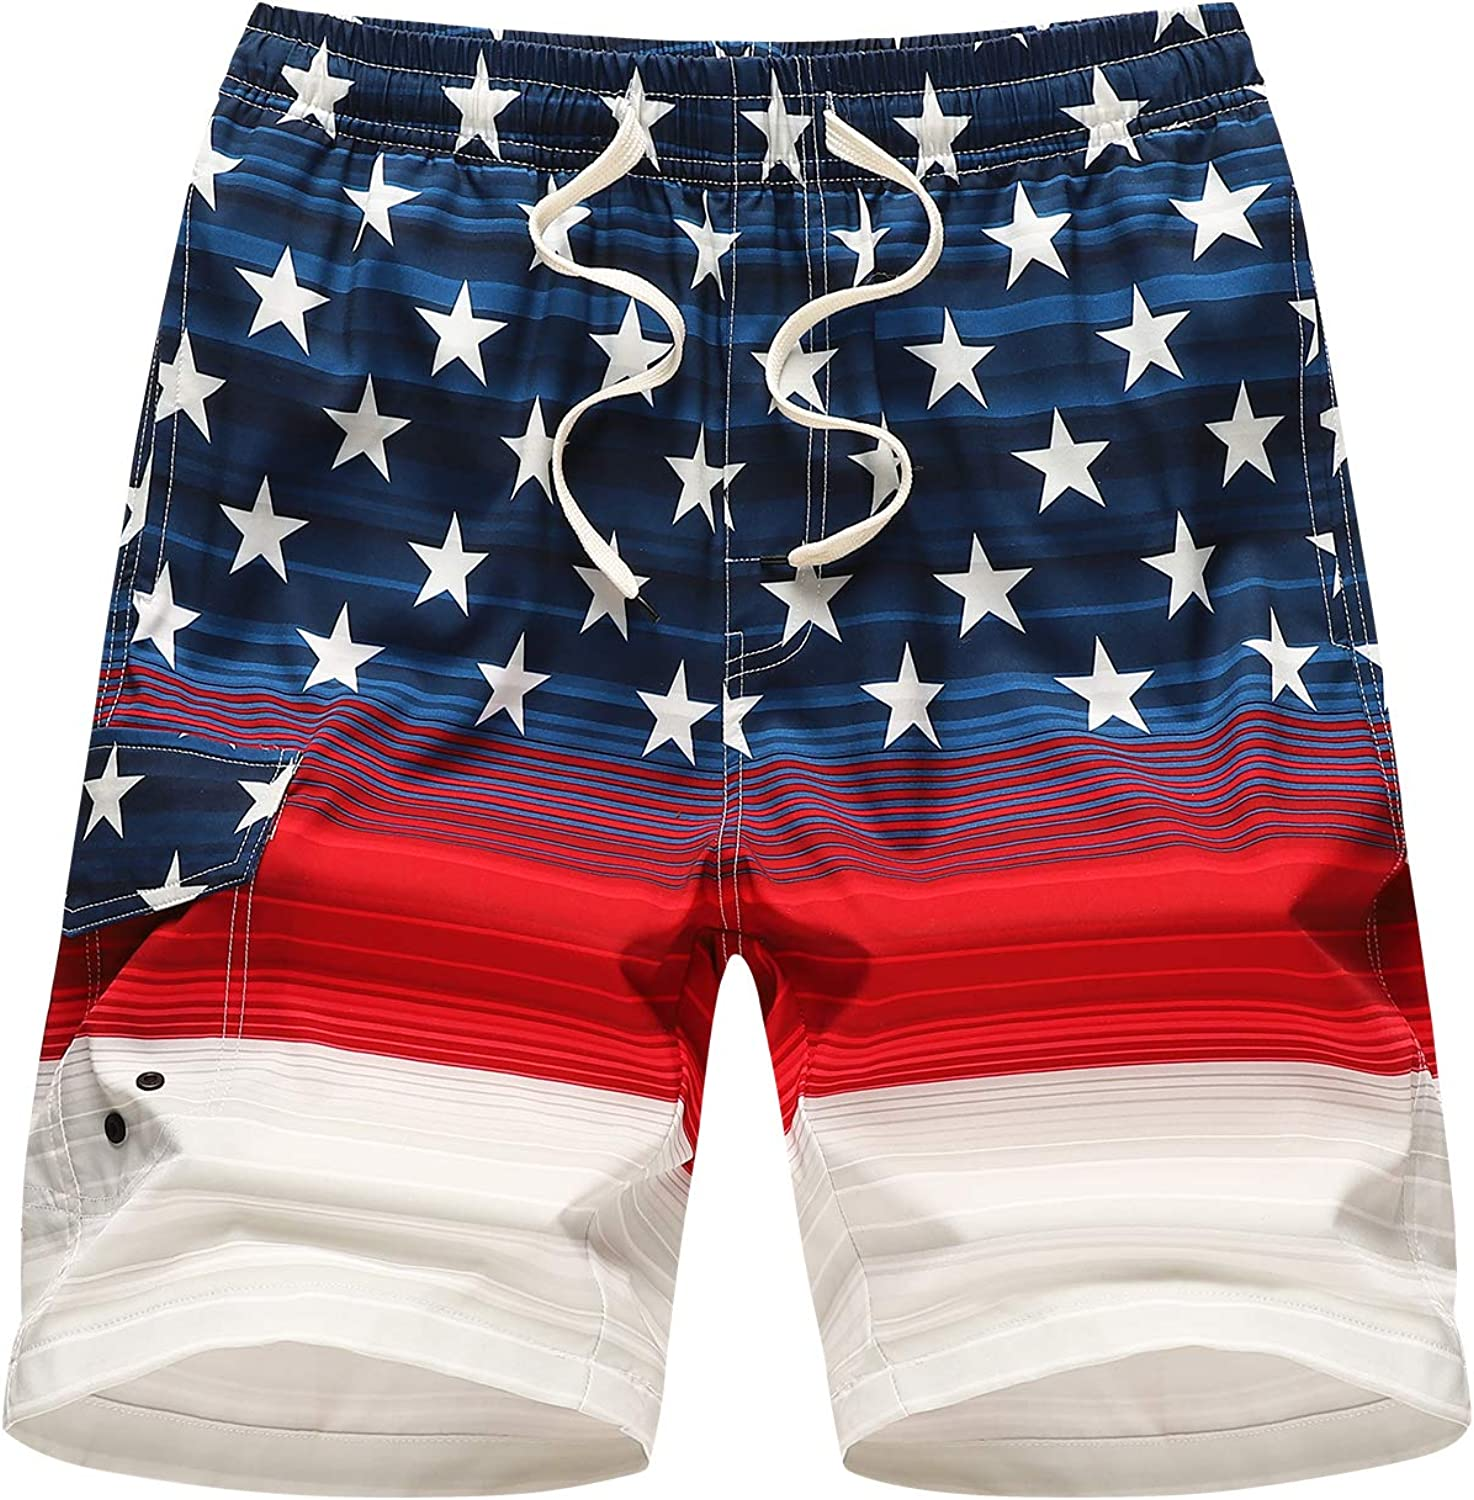 LTIFONE Men's Swim Trunks Quick Dry Beach Board Shorts Drawstring Lightweight with Elastic Waist and Pockets